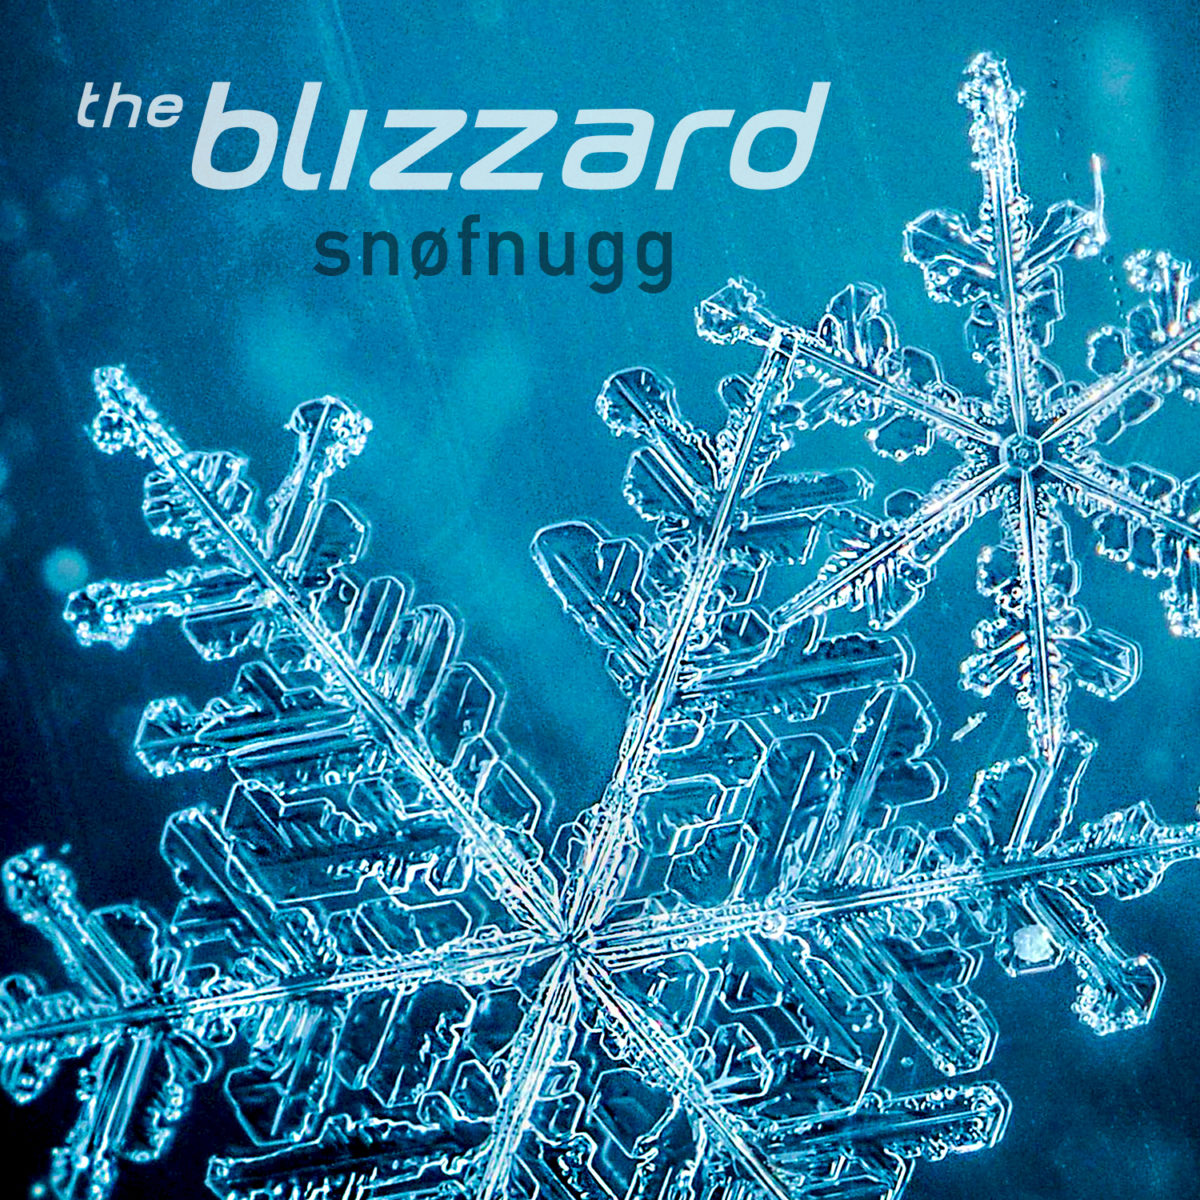 The Blizzard - Snøfnugg